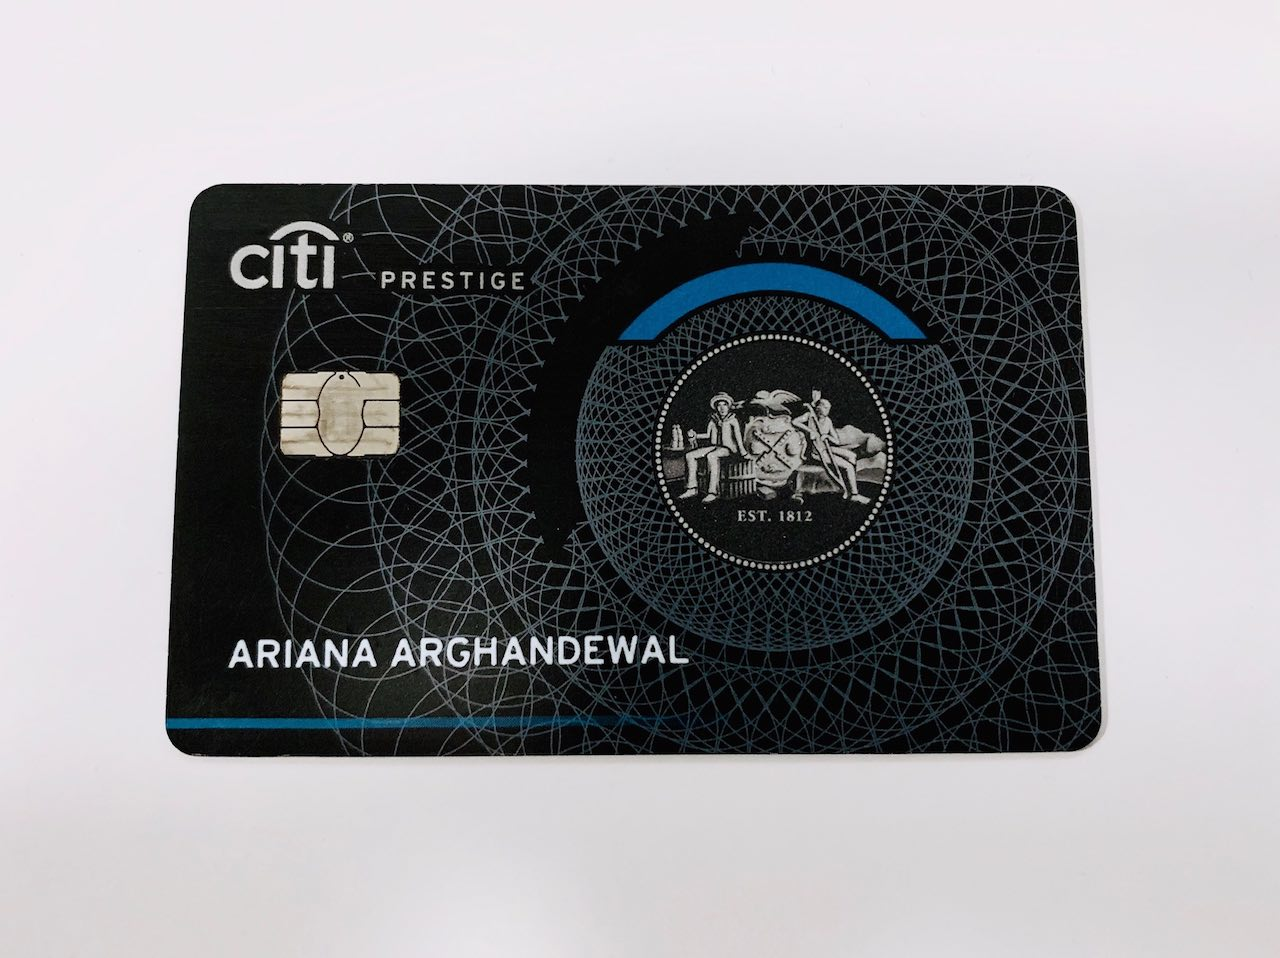 Citi Prepaid Limited Brands >> Citi Prestige Card Replacing Lost Benefits With Other Cards